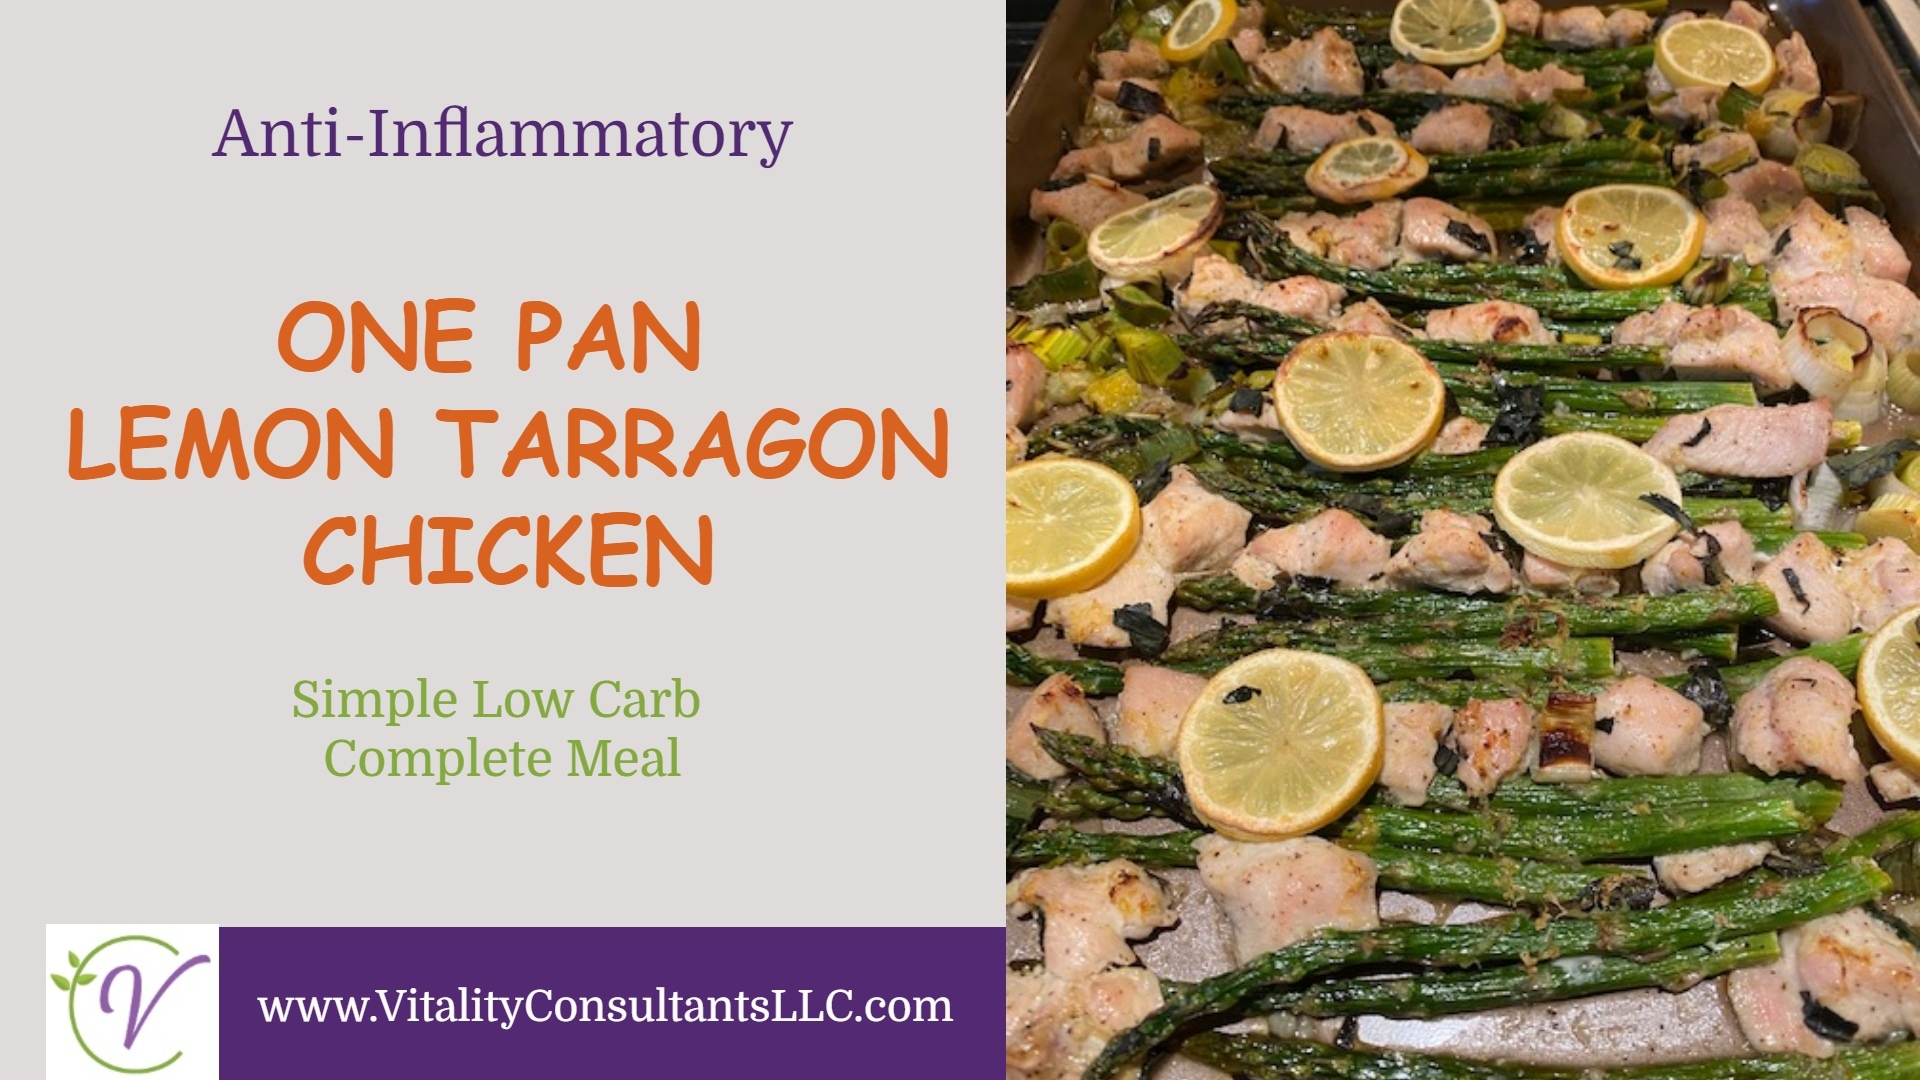 One Pan Lemon Tarragon Chicken